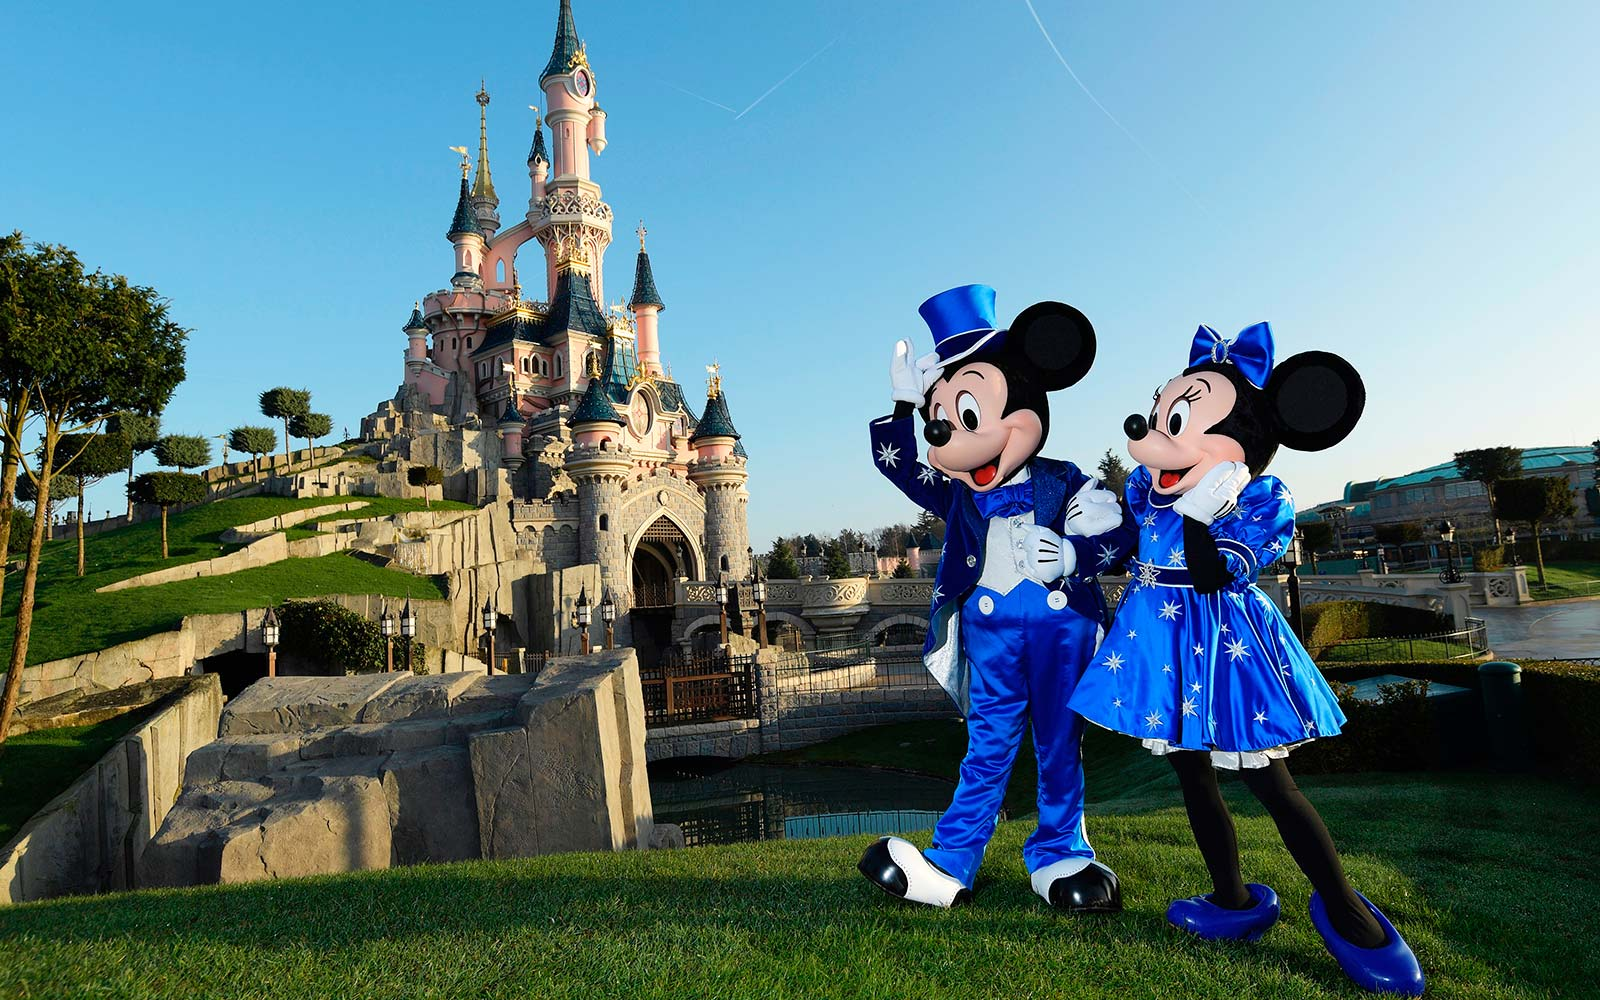 People Keep Scattering Ashes at Disney Theme Parks — and Custodians Are Over It disneyland-mickey-minnie-mouse-disneypoint11171